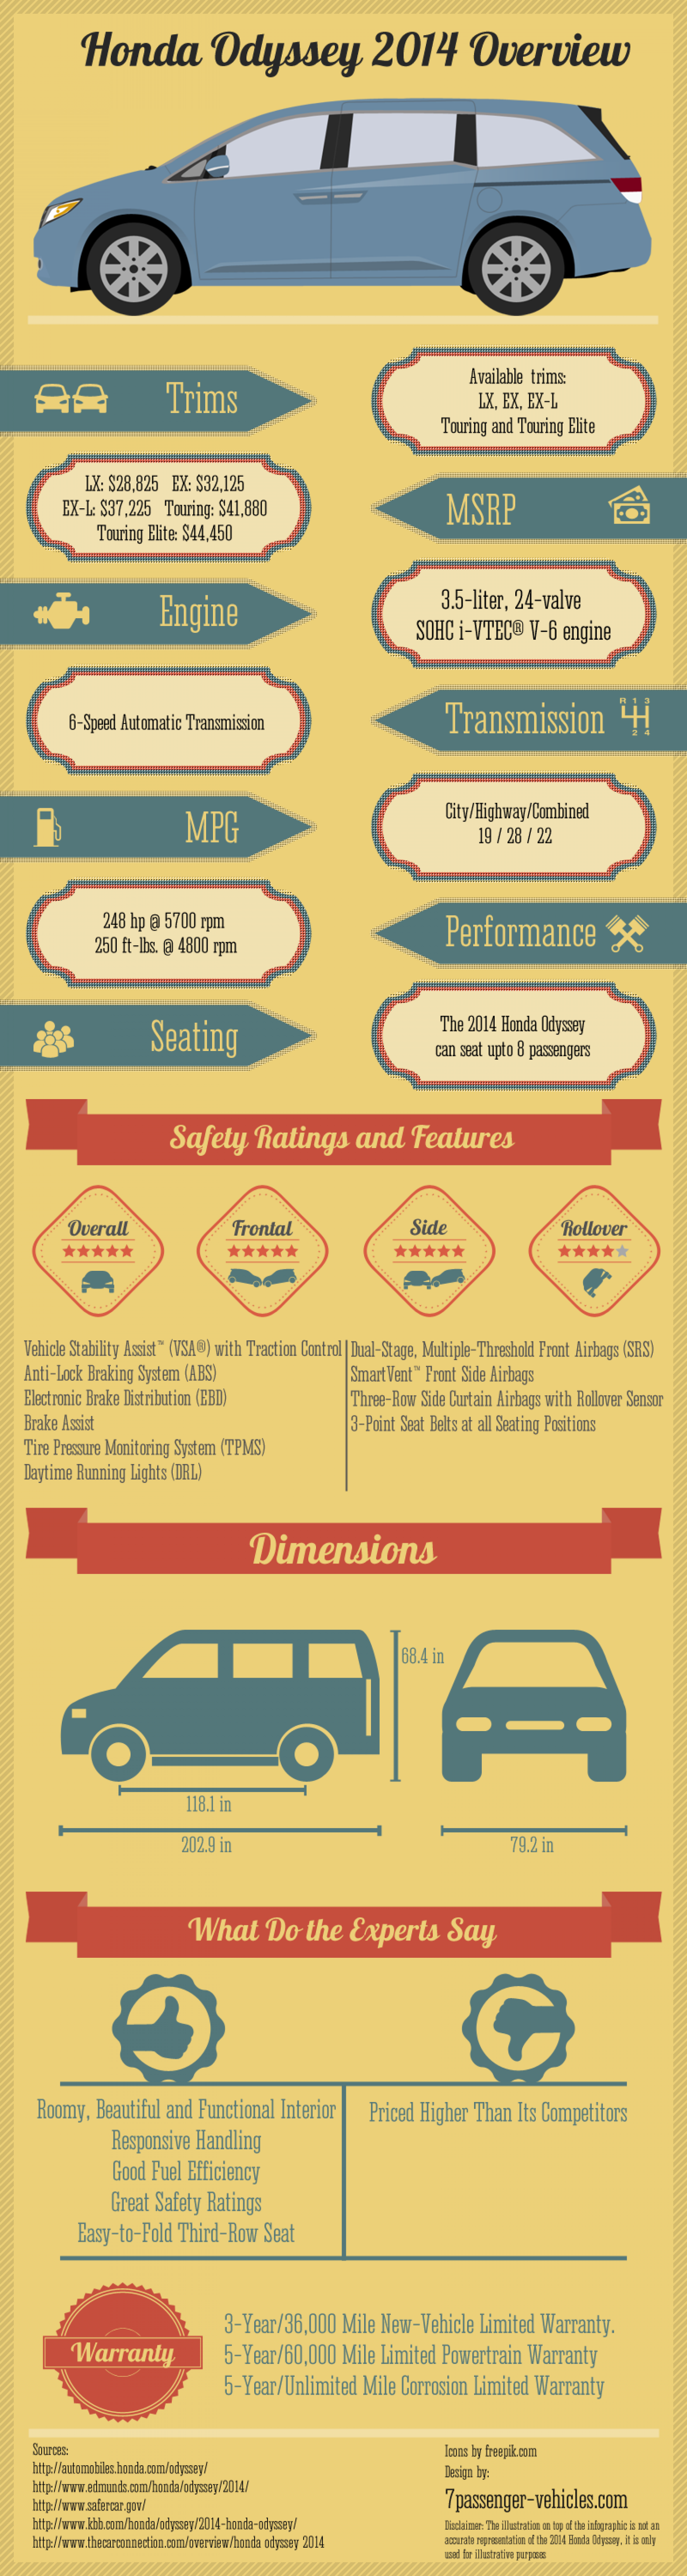 Honda Odyssey 2014 Overview Infographic